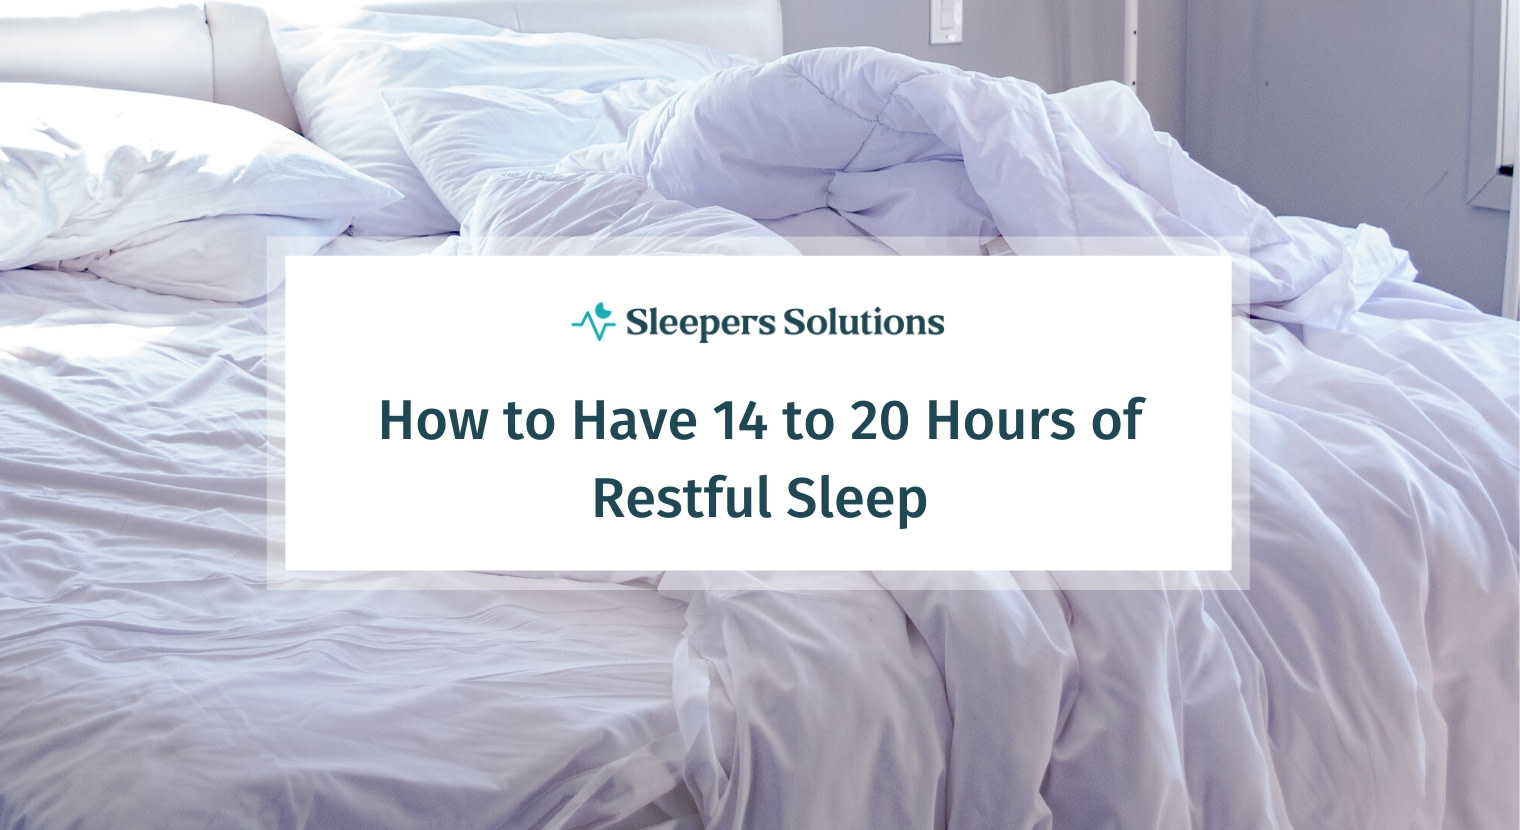 How to Have 14 to 20 Hours of Restful Sleep